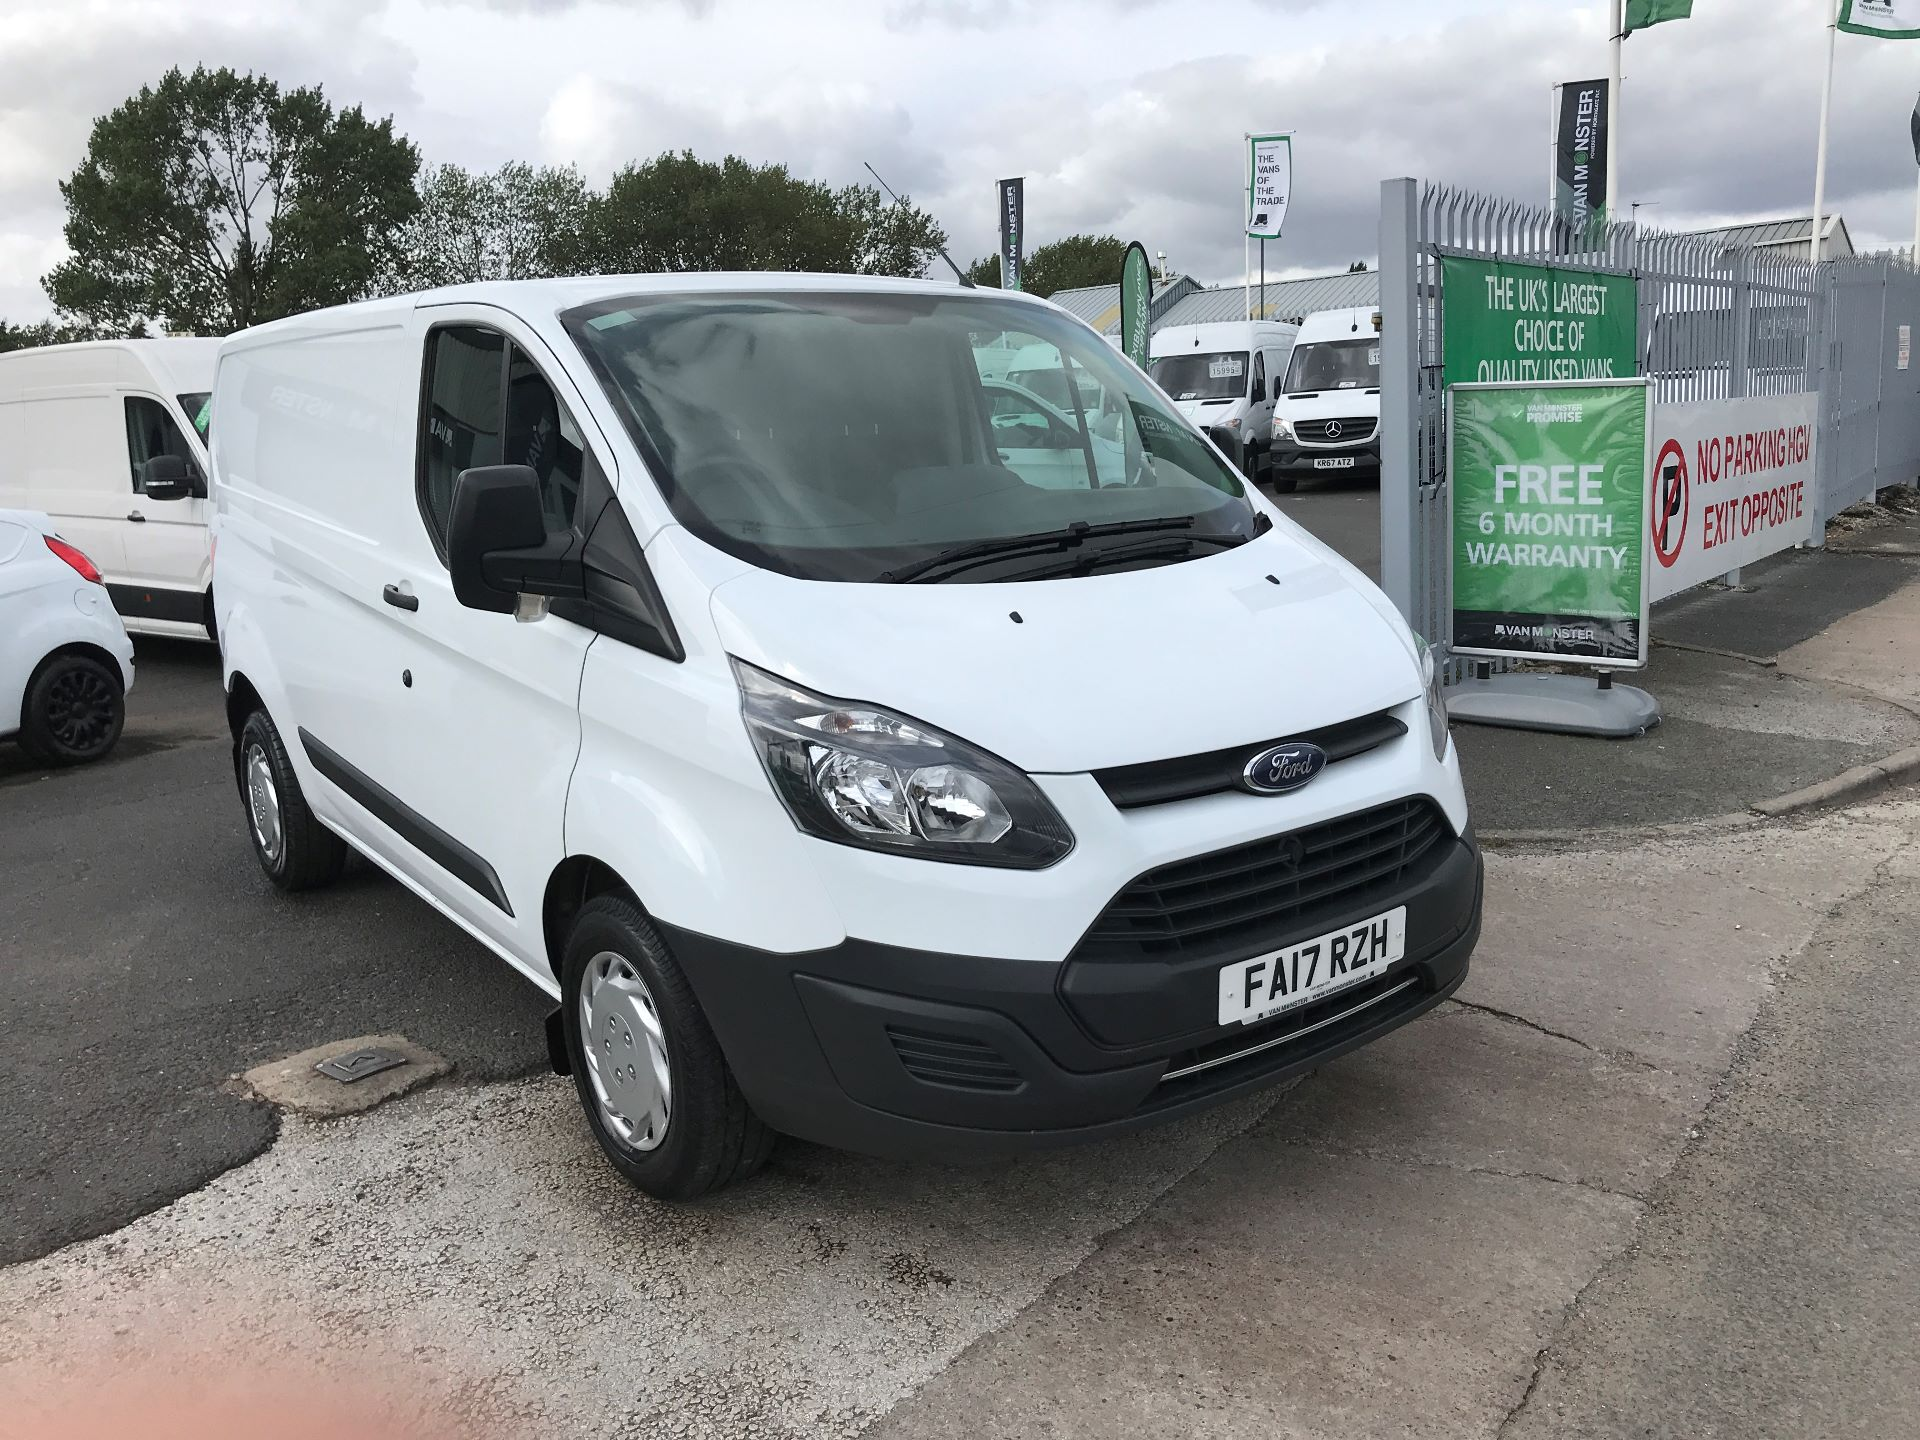 2017 Ford Transit Custom 290 L1 2.0TDCI LOW ROOF 105PS (FA17RZH)